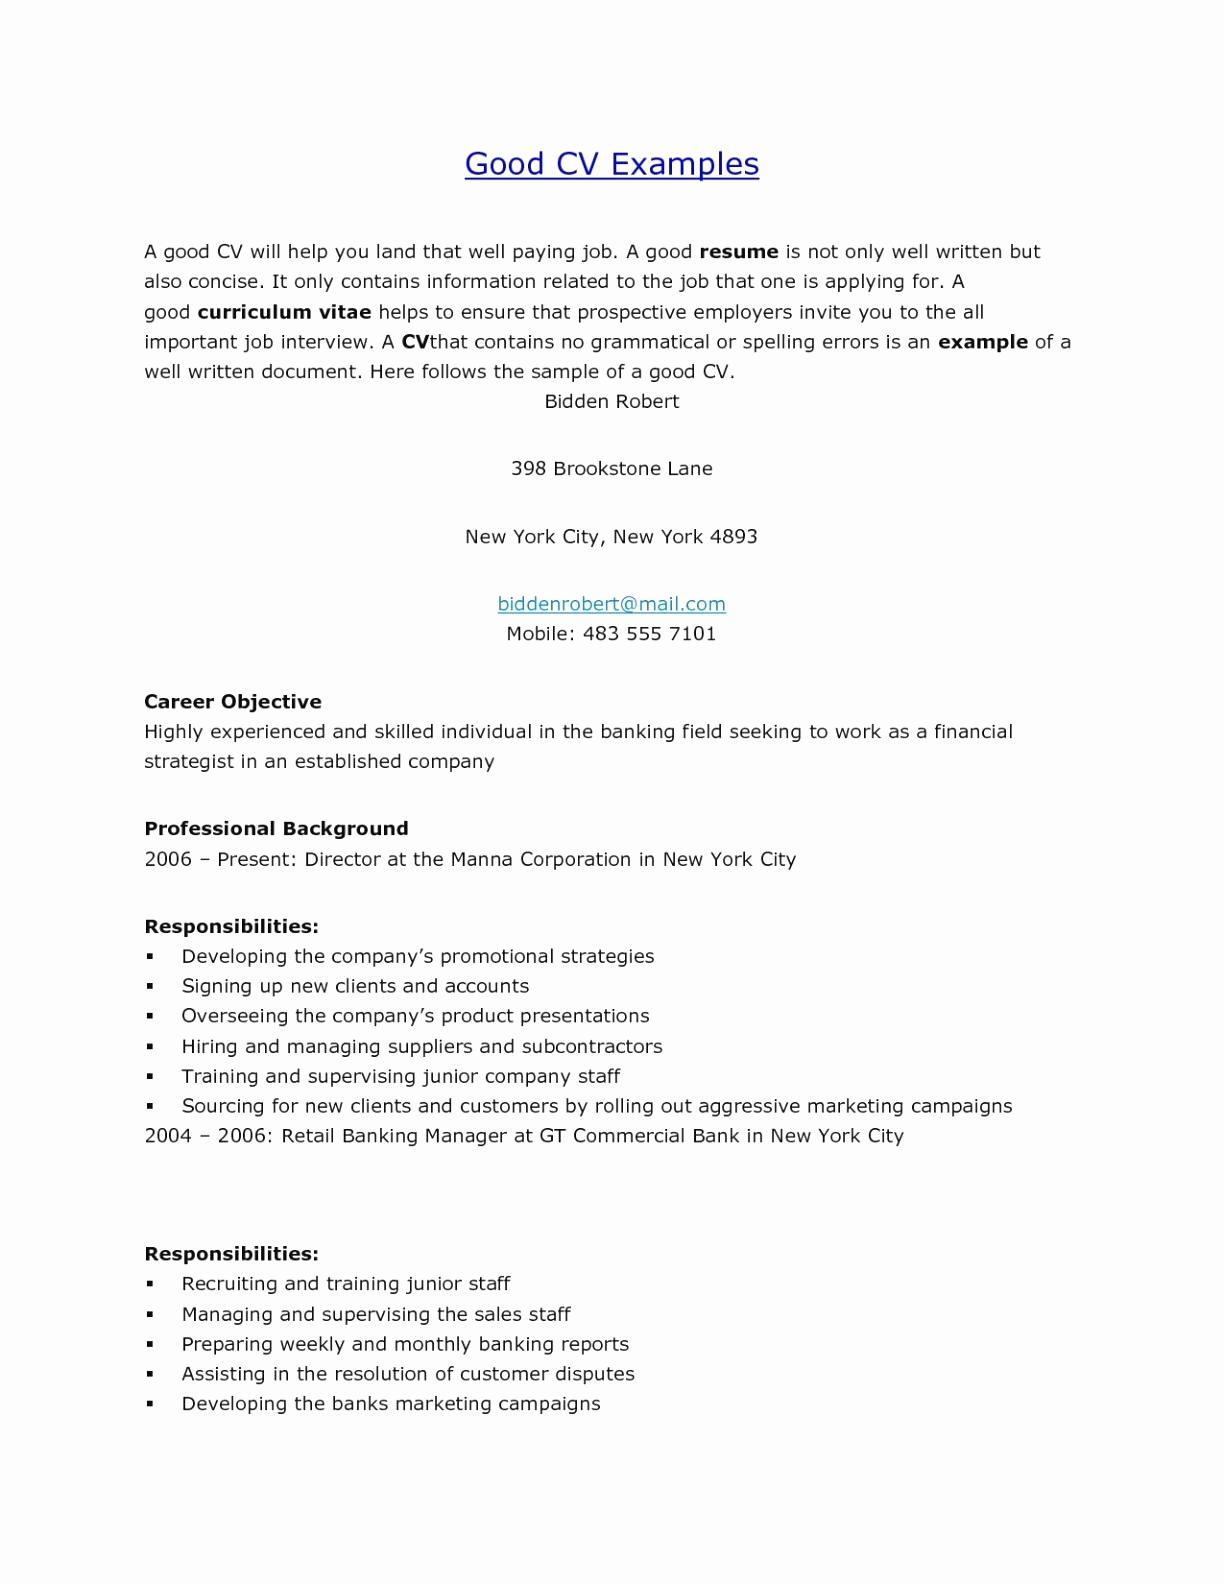 Resume Template Examples - Skills Resume Examples Luxury What to Put Resume for Skills Resume